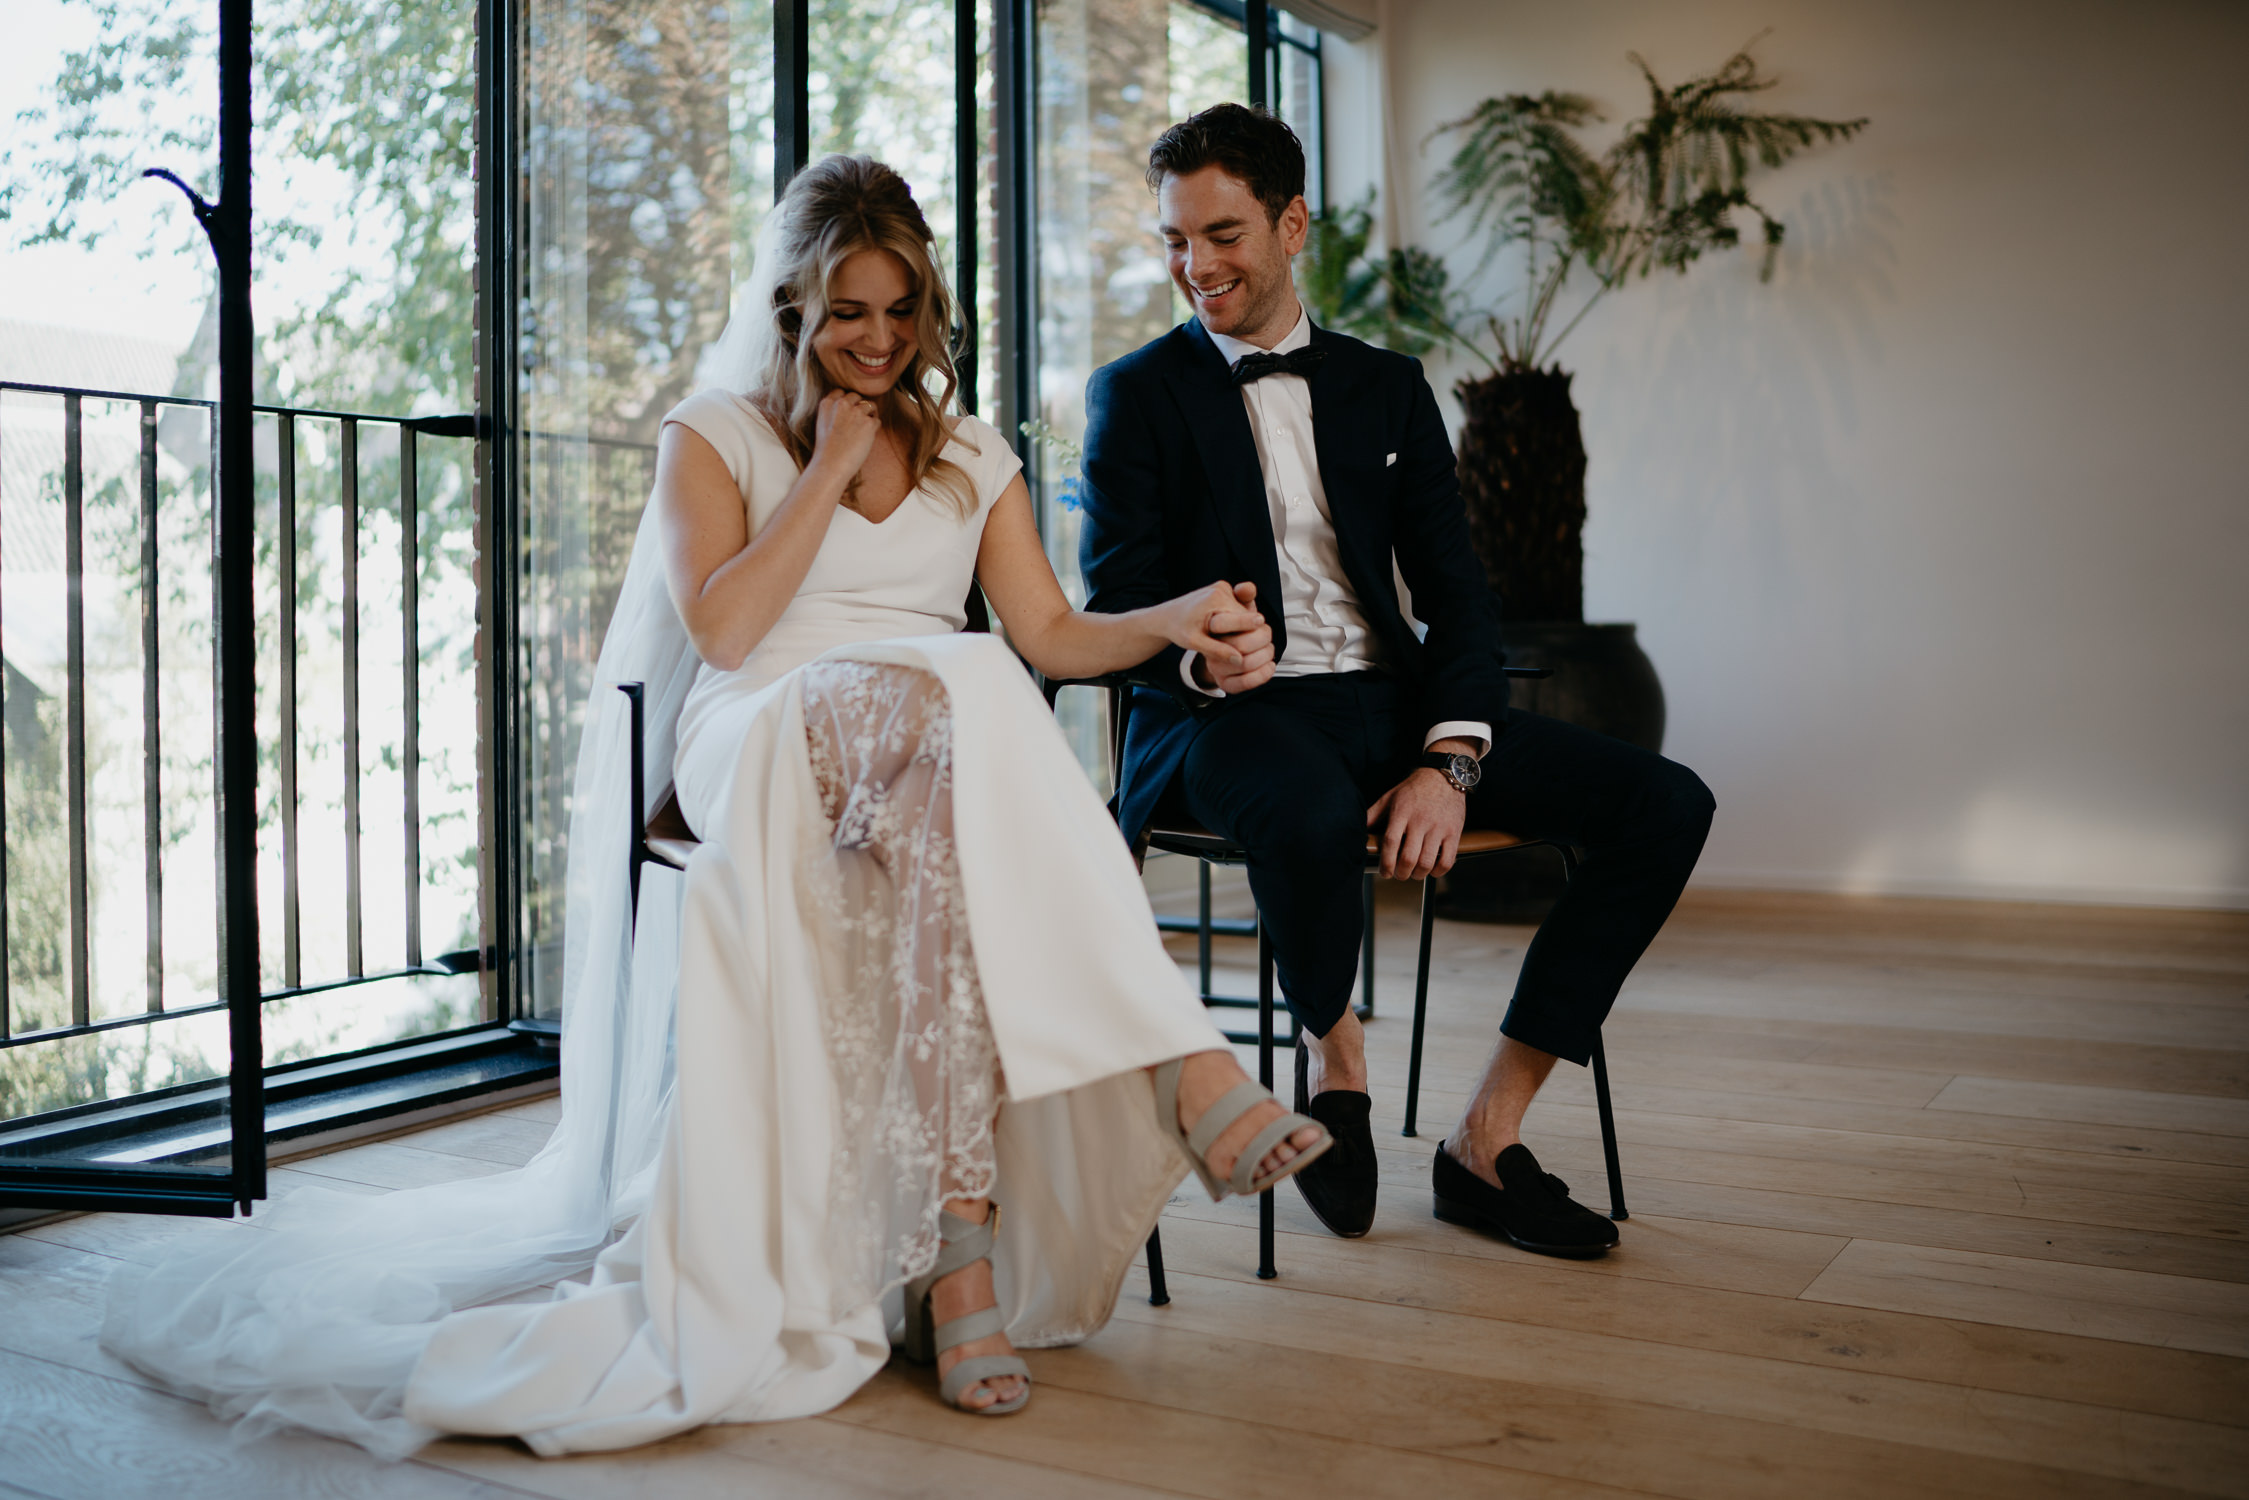 Lovely couple getting married in Amsterdam best wedding photographer in amsterdam